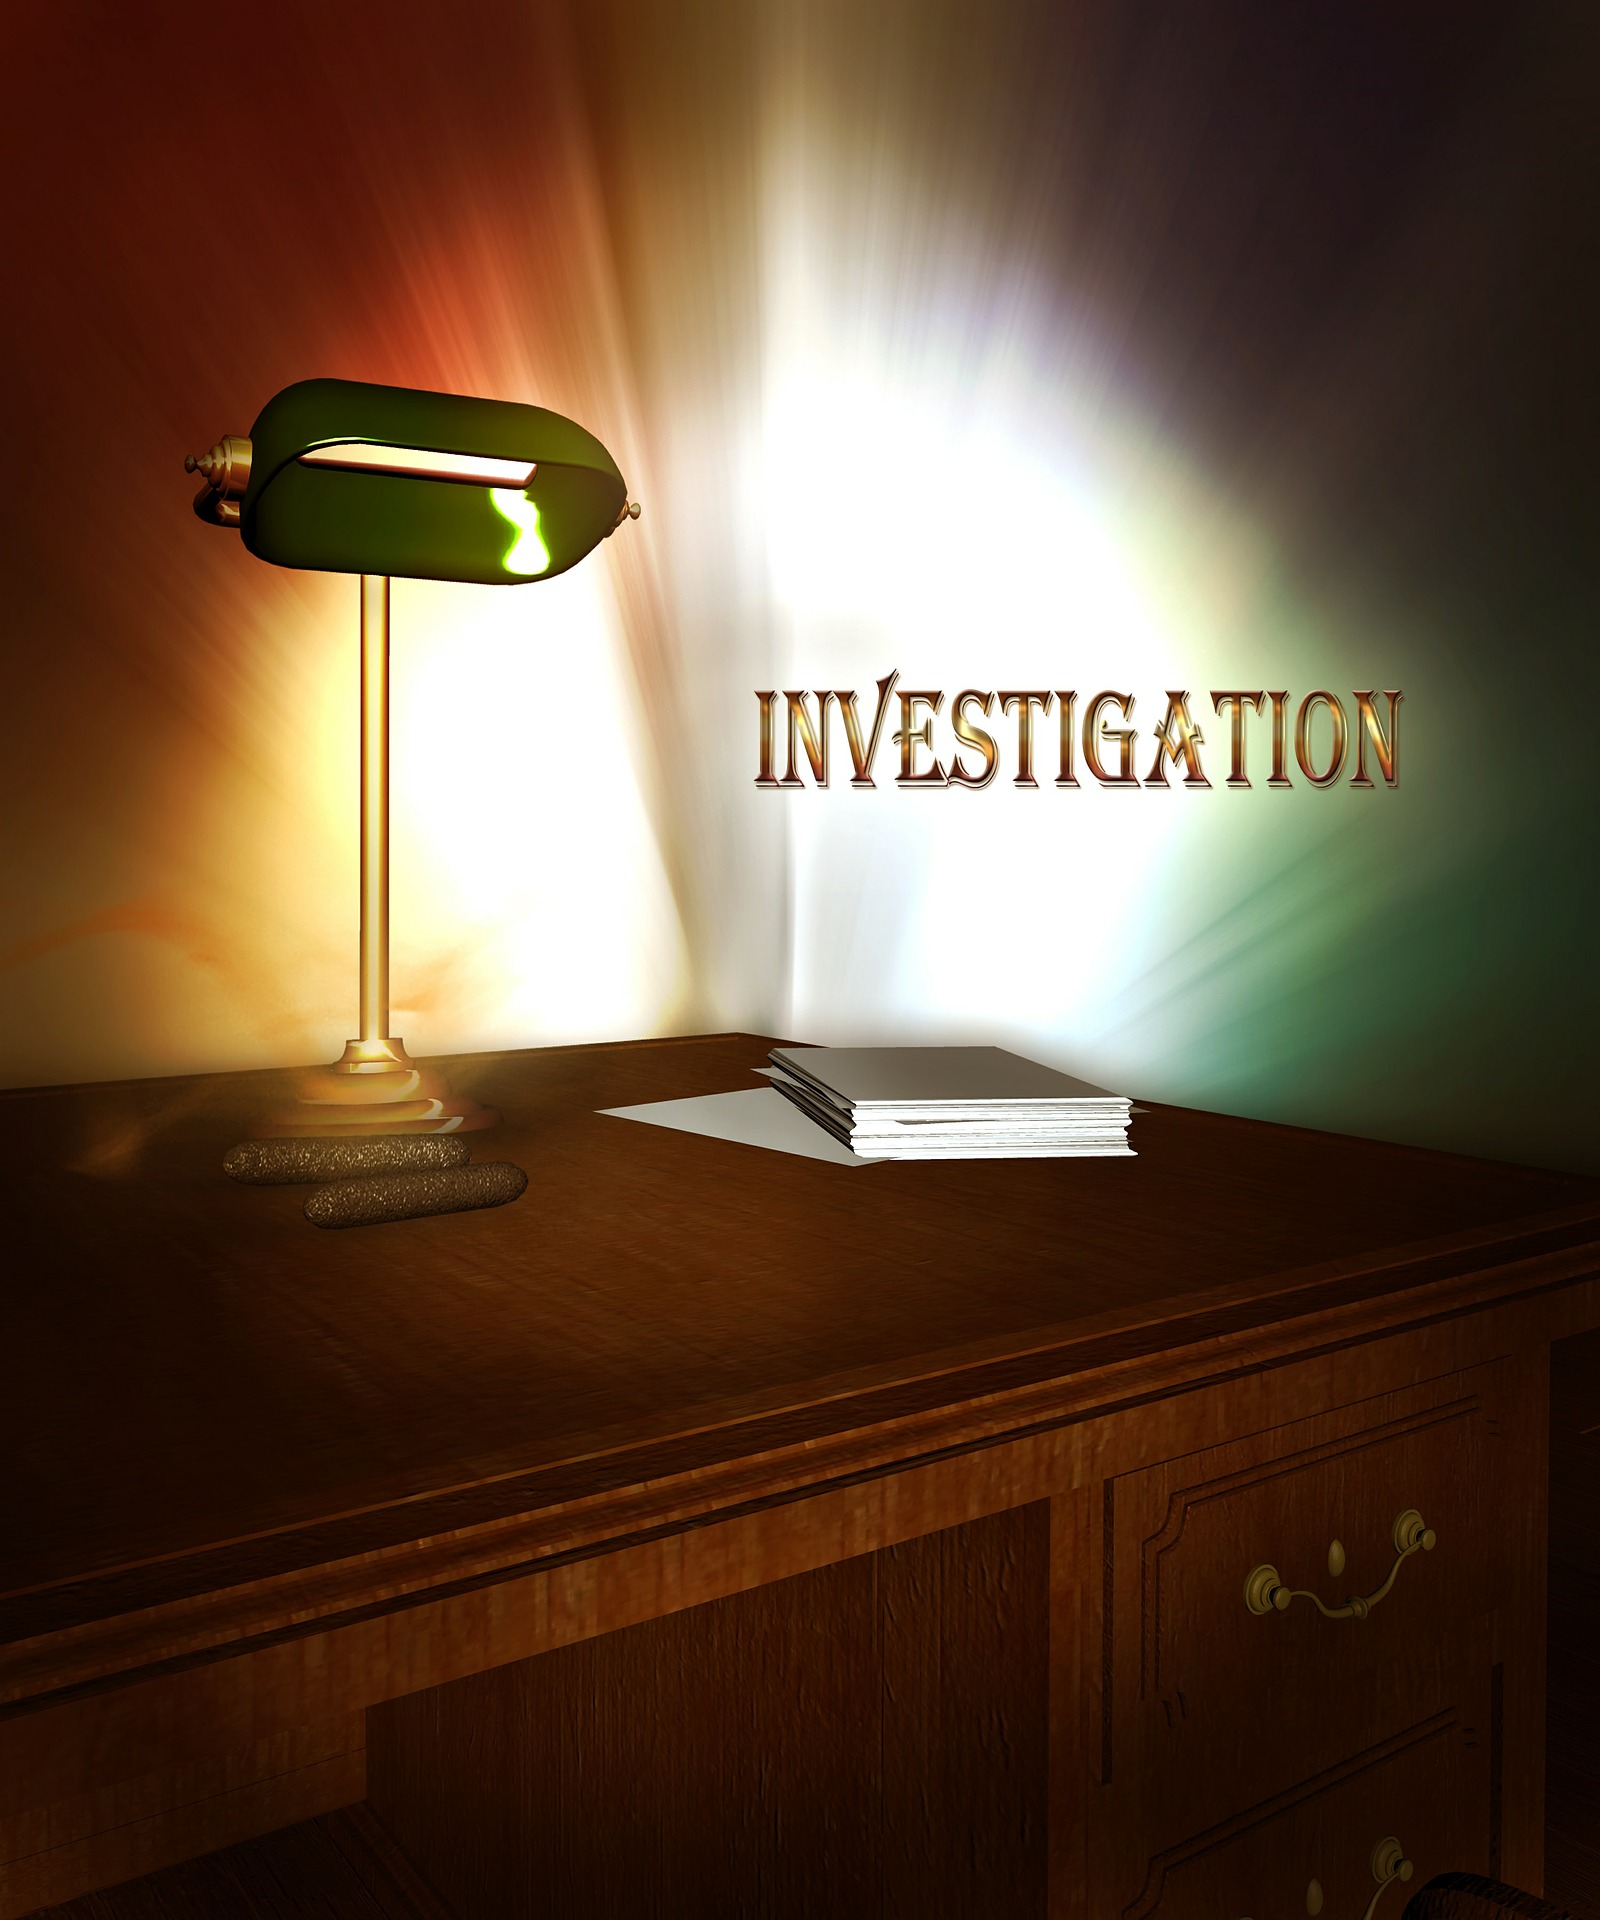 investigation desk with a book and a banker's lamp